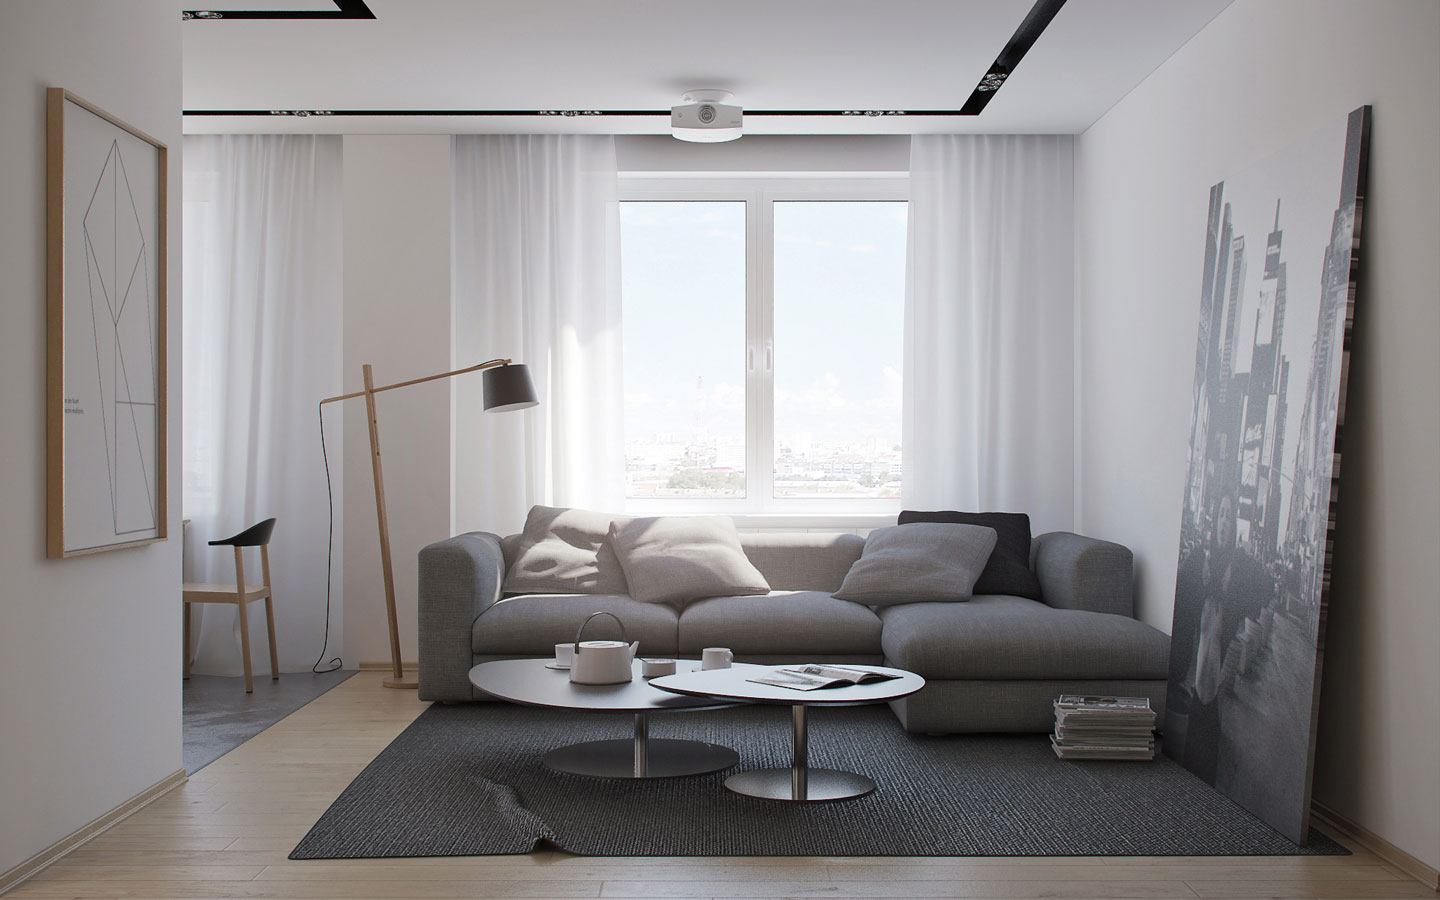 Natural Minimalist Apartment Theme - 5 ideas for a one bedroom apartment with study includes floor plans